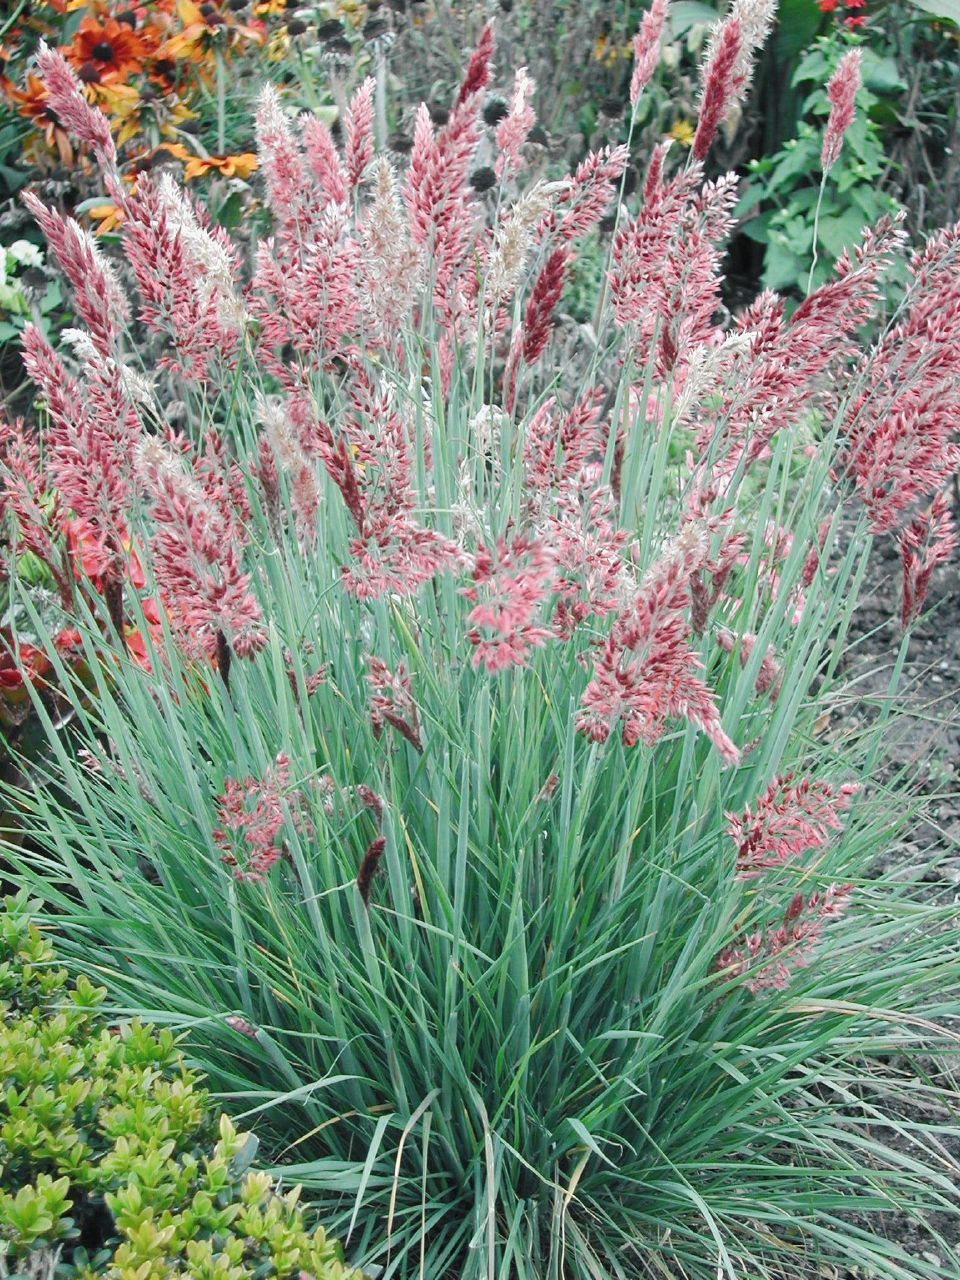 Ruby Grass Small Showy Grass With Narrow Silky Ruby Pink Blooms